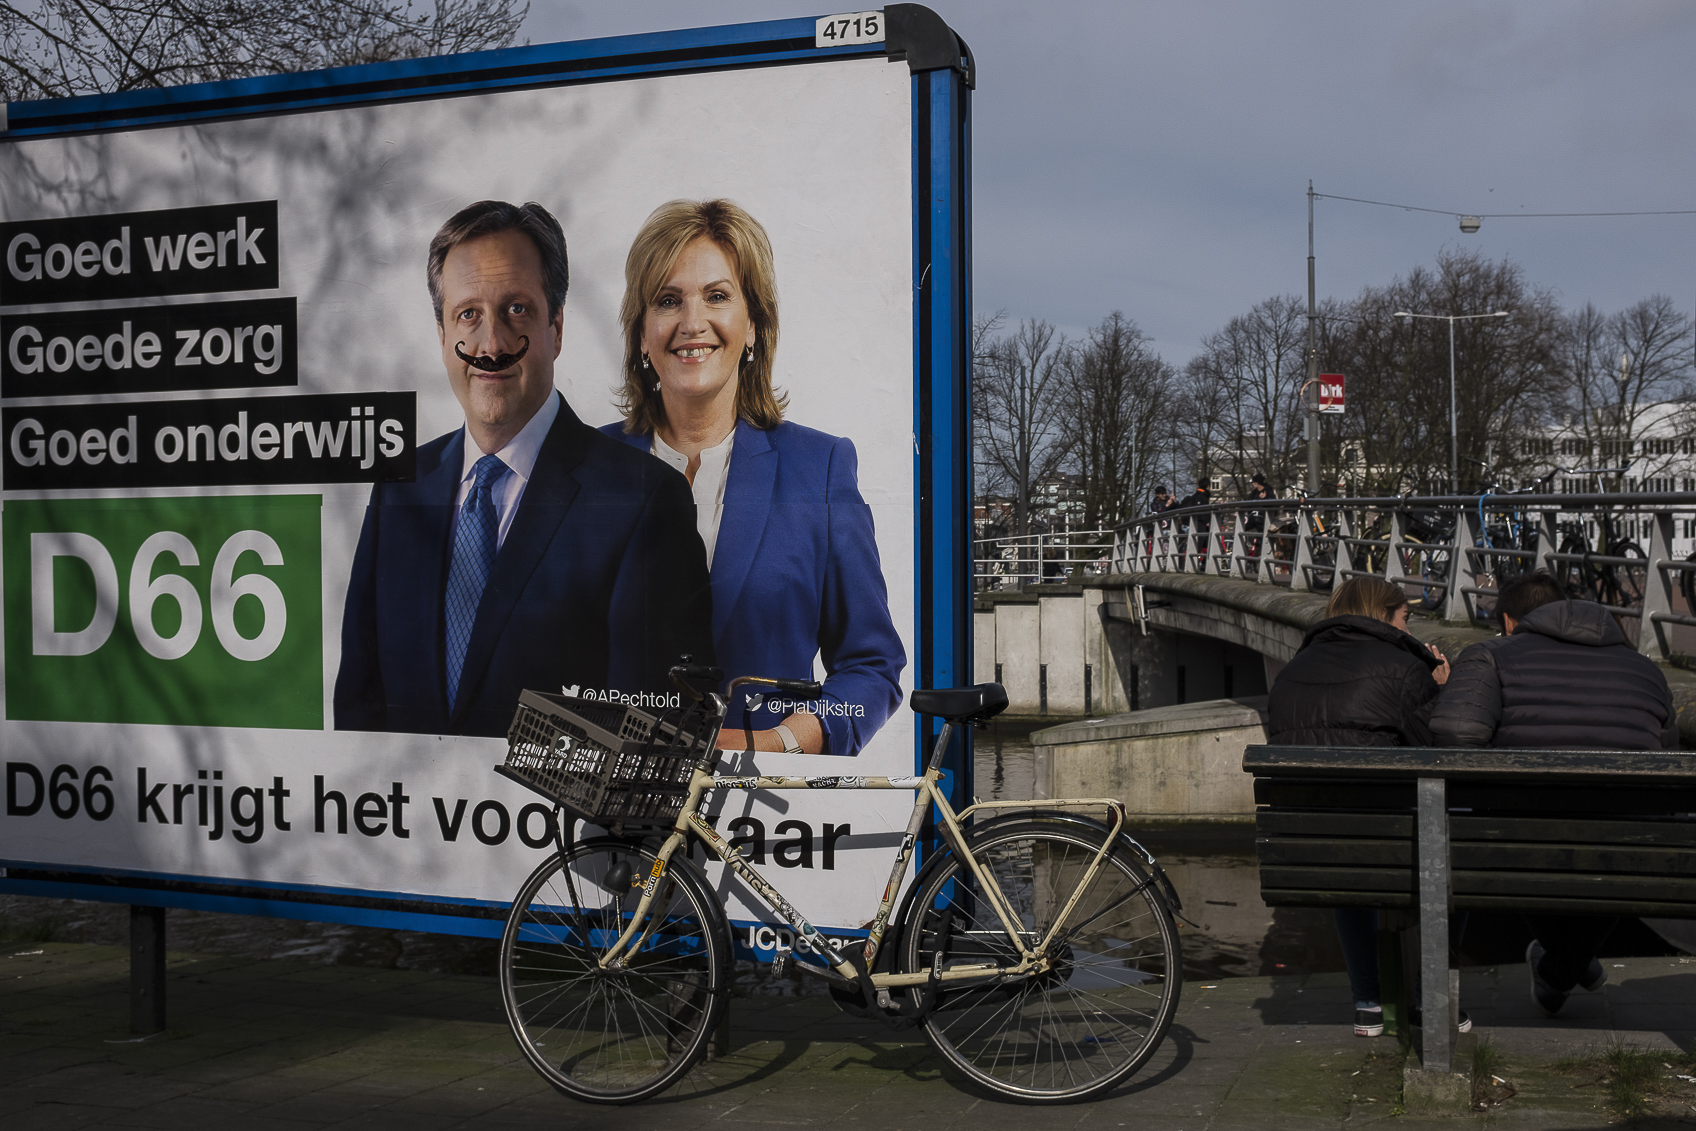 A billboard in Amsterdam, Netherlands with de-faced posters of the candidtes in the Dutch general elections. March 14, 2017.